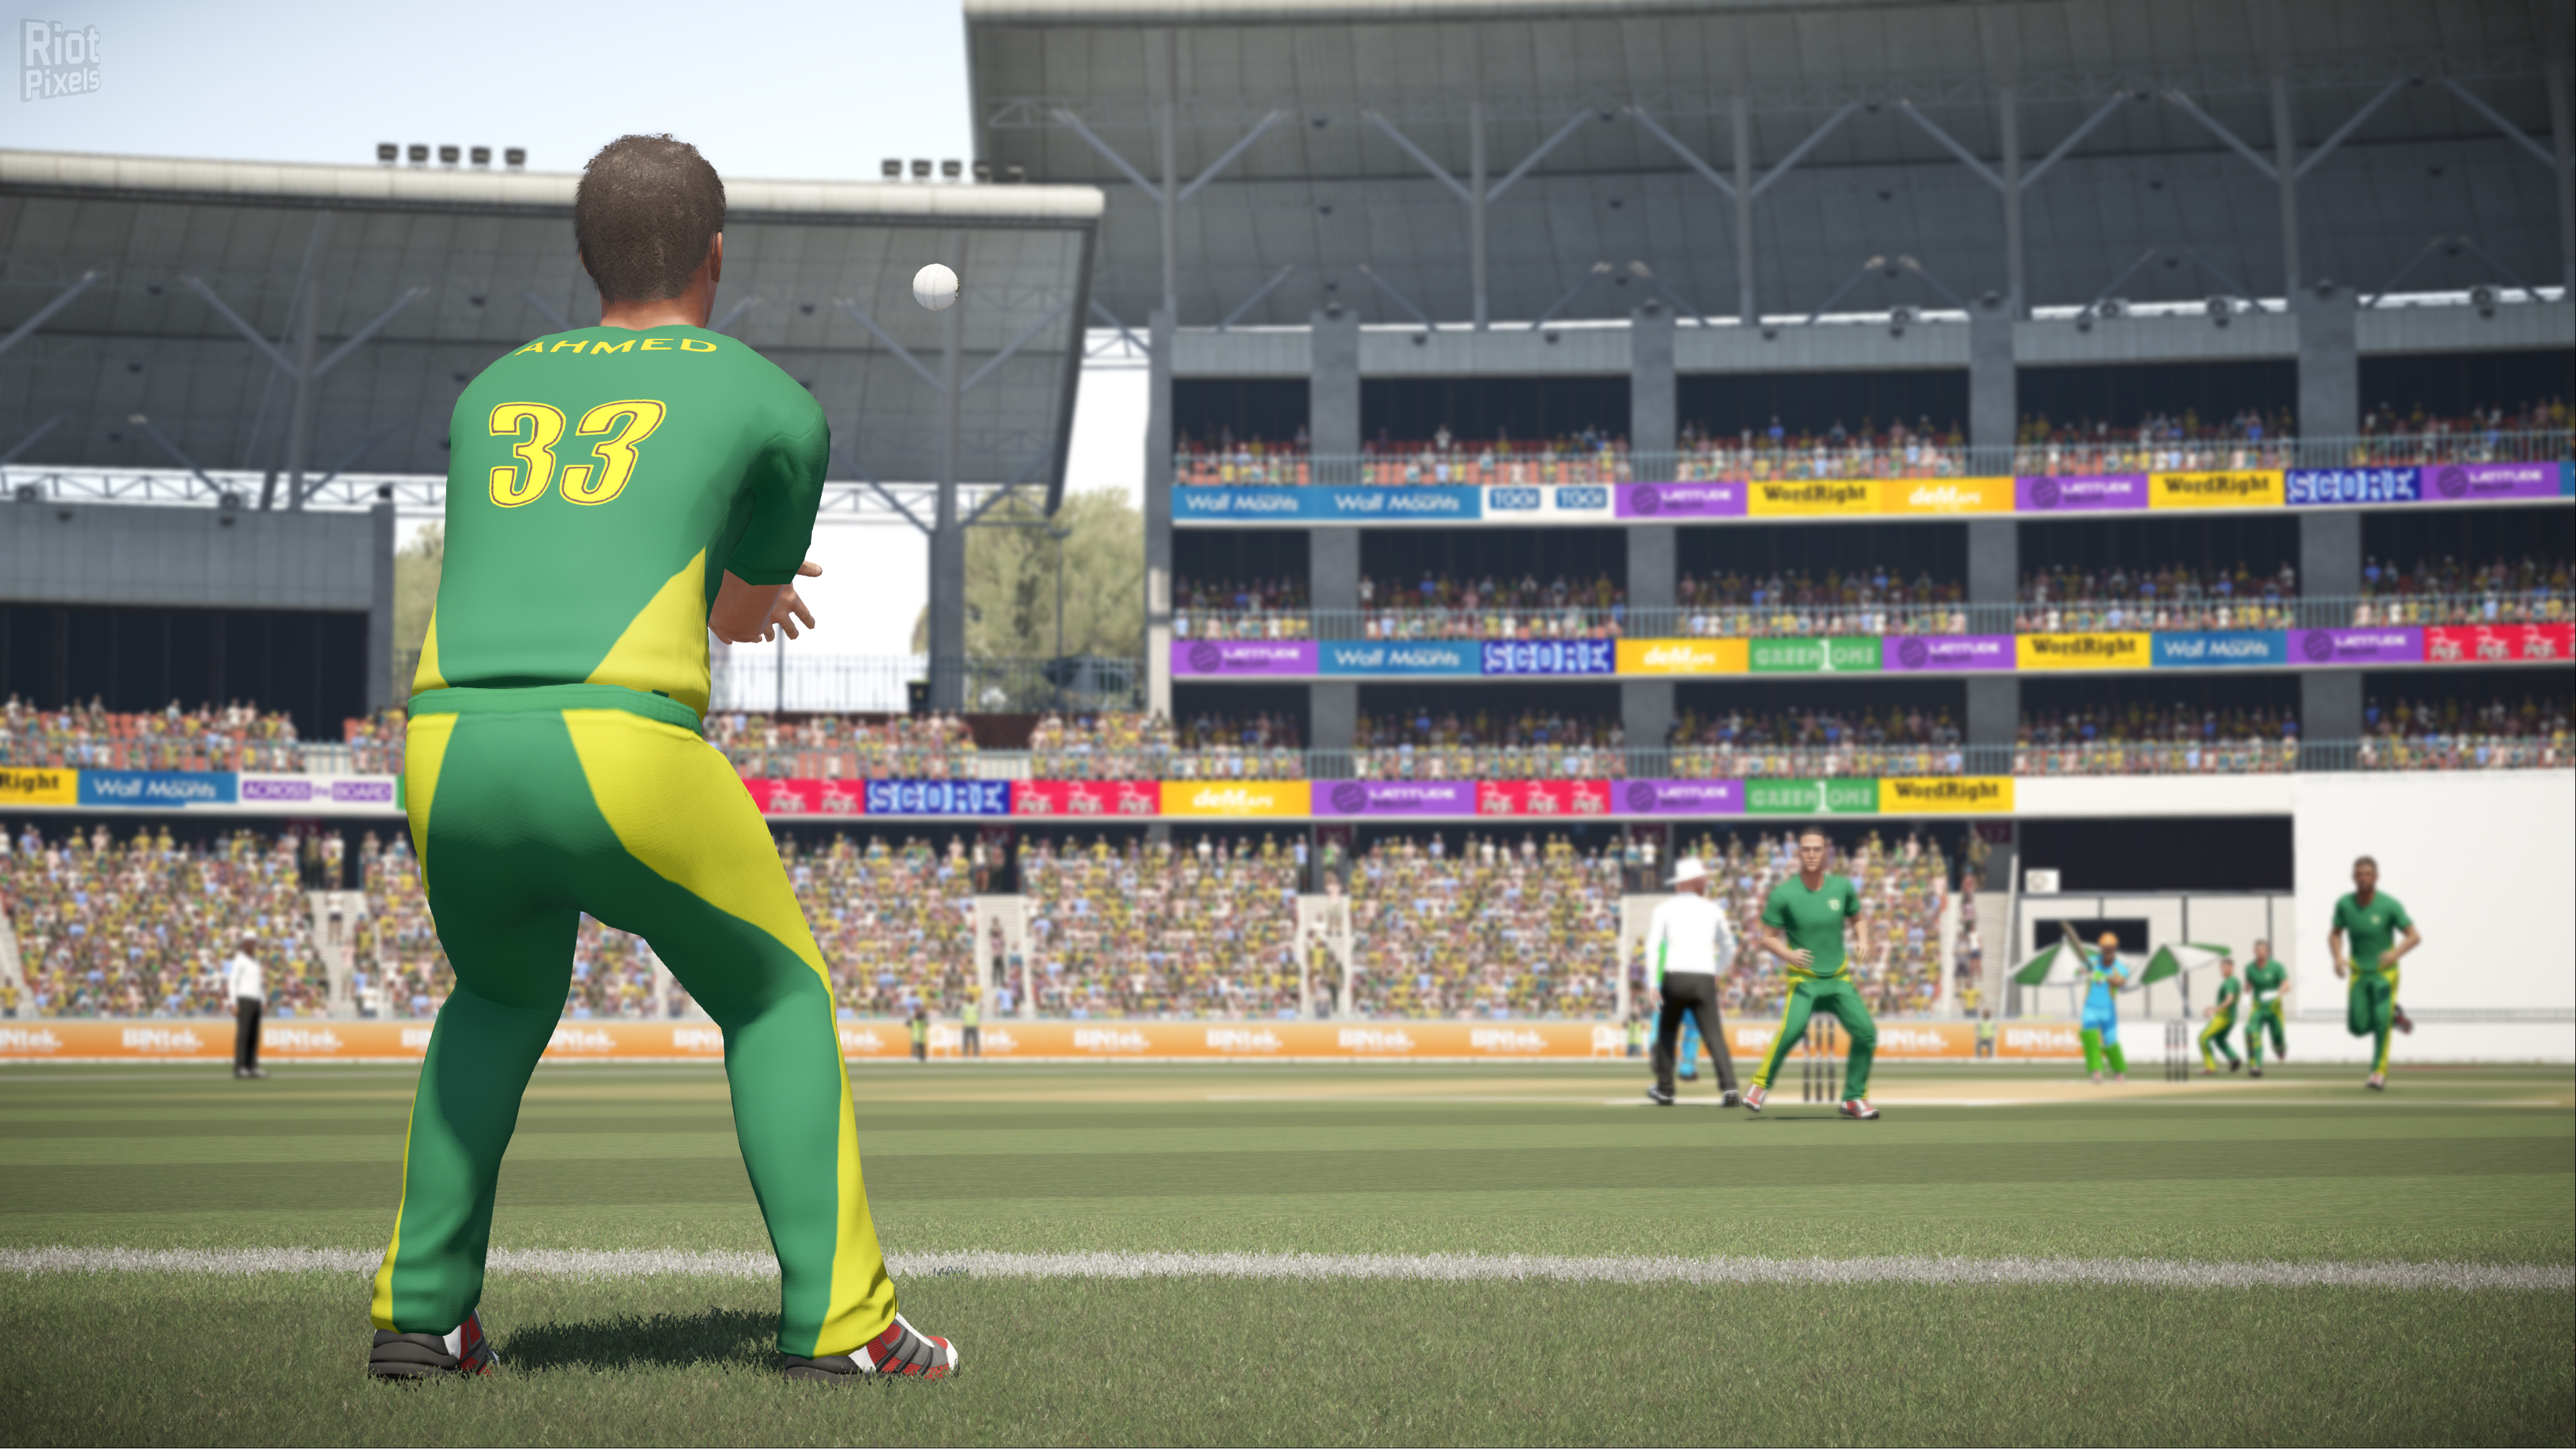 Don Bradman Cricket 17 Game Screenshots At Riot Pixels Images